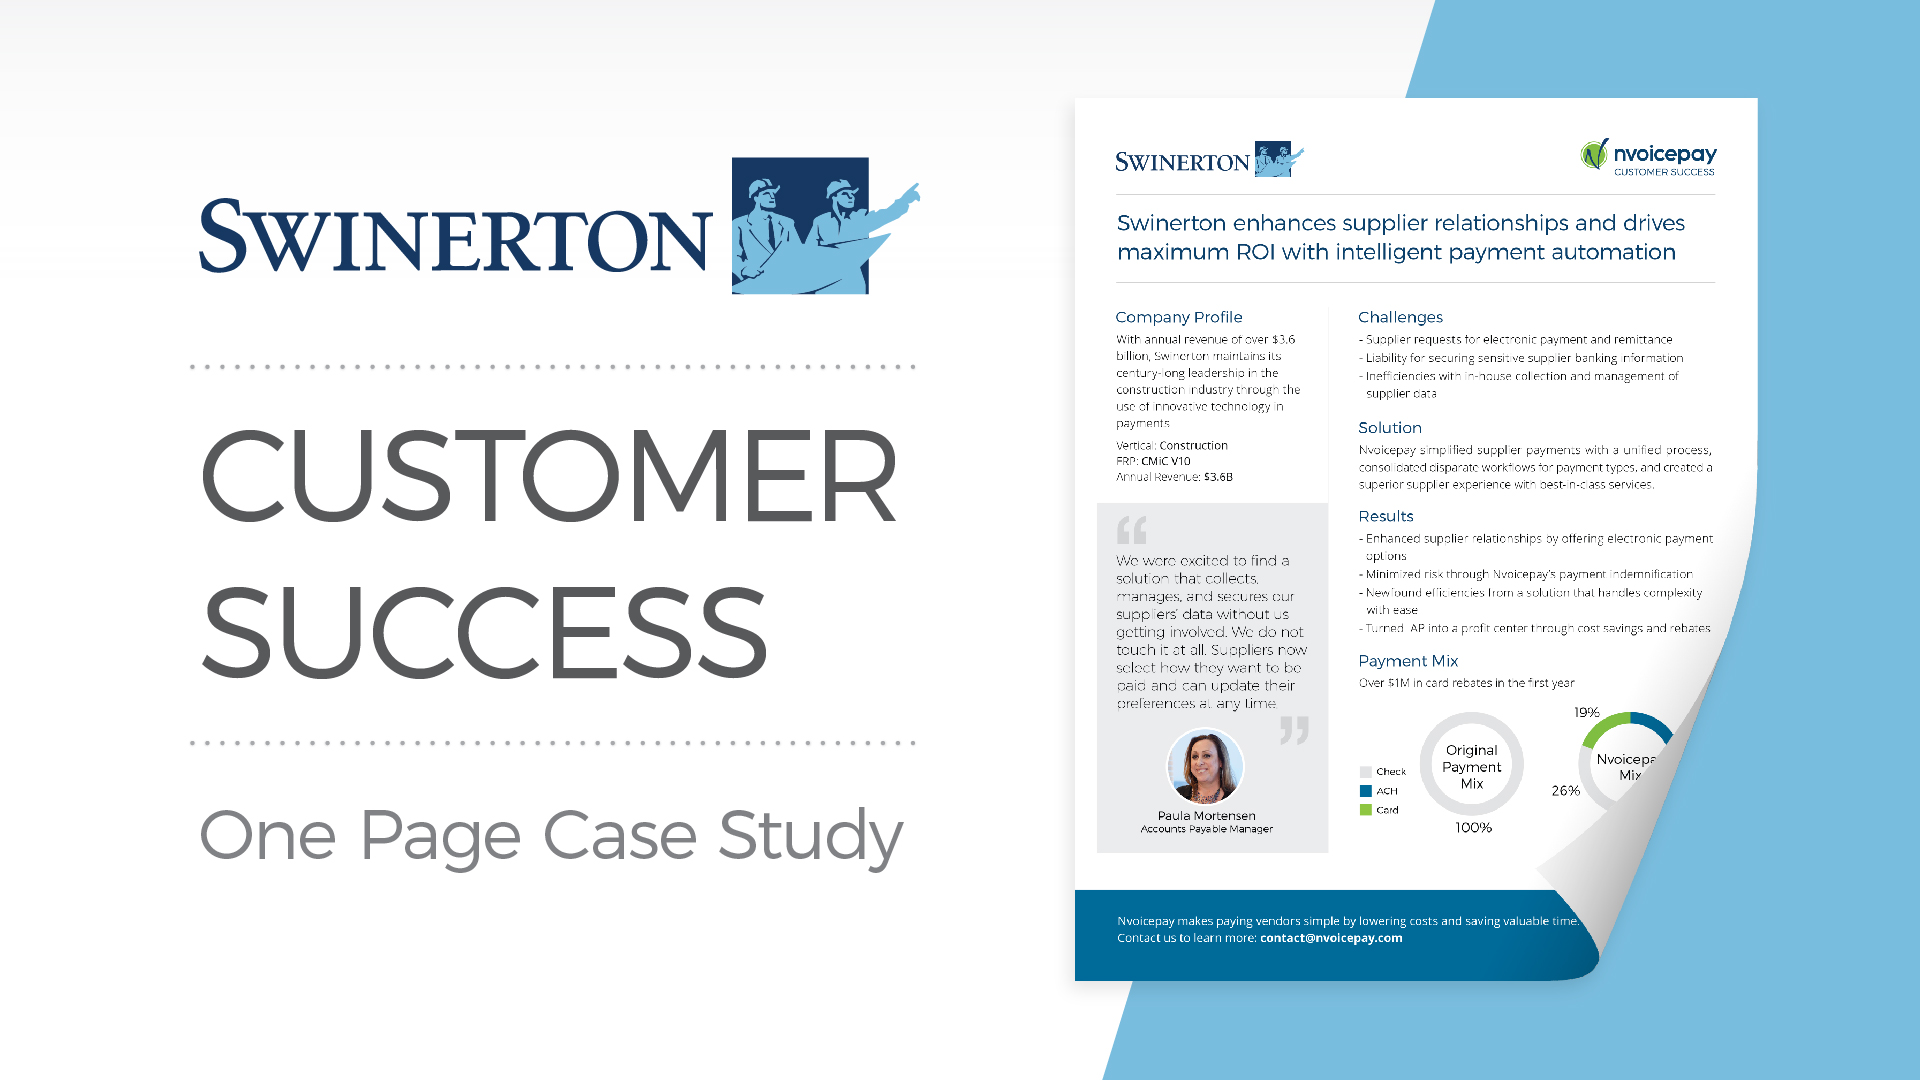 Customer Success: Swinerton